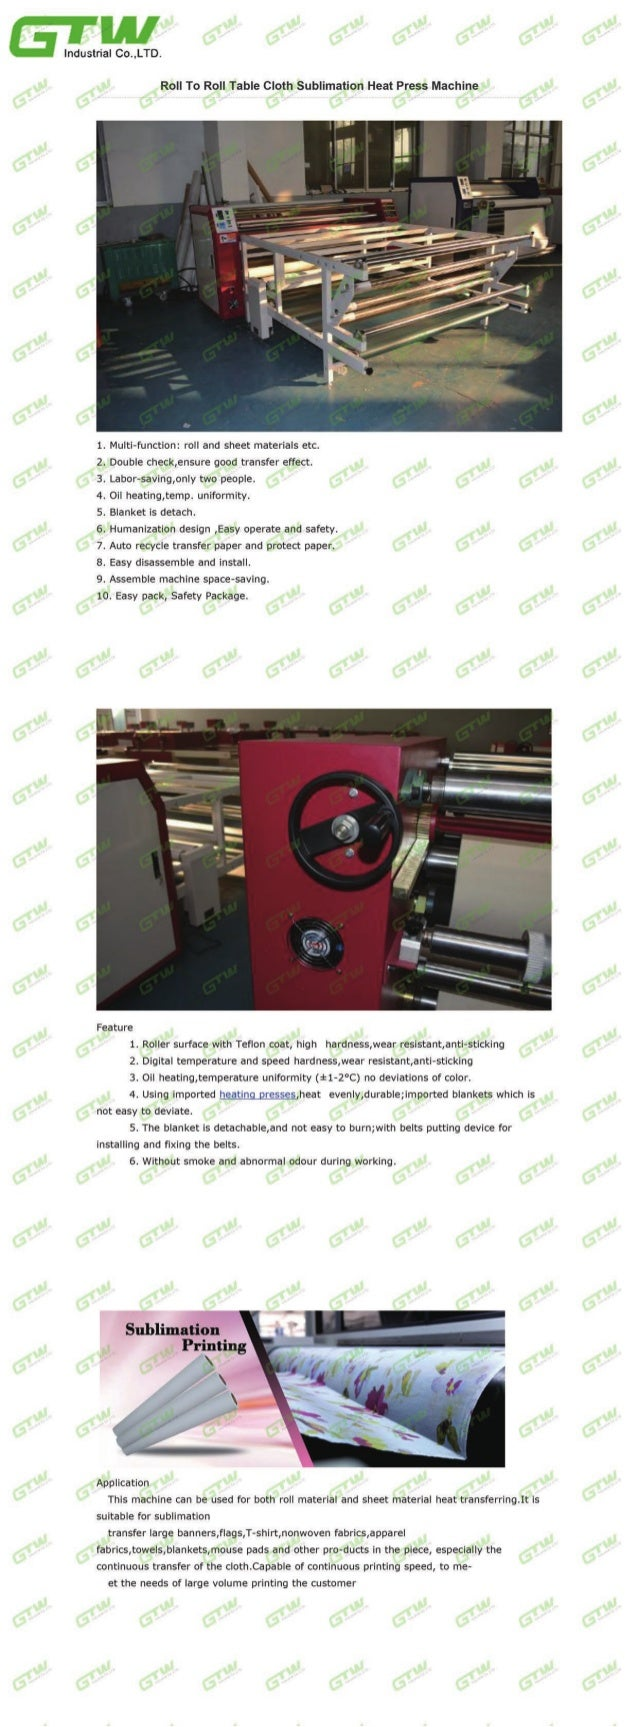 Roll to roll table cloth sublimation heat press Machine